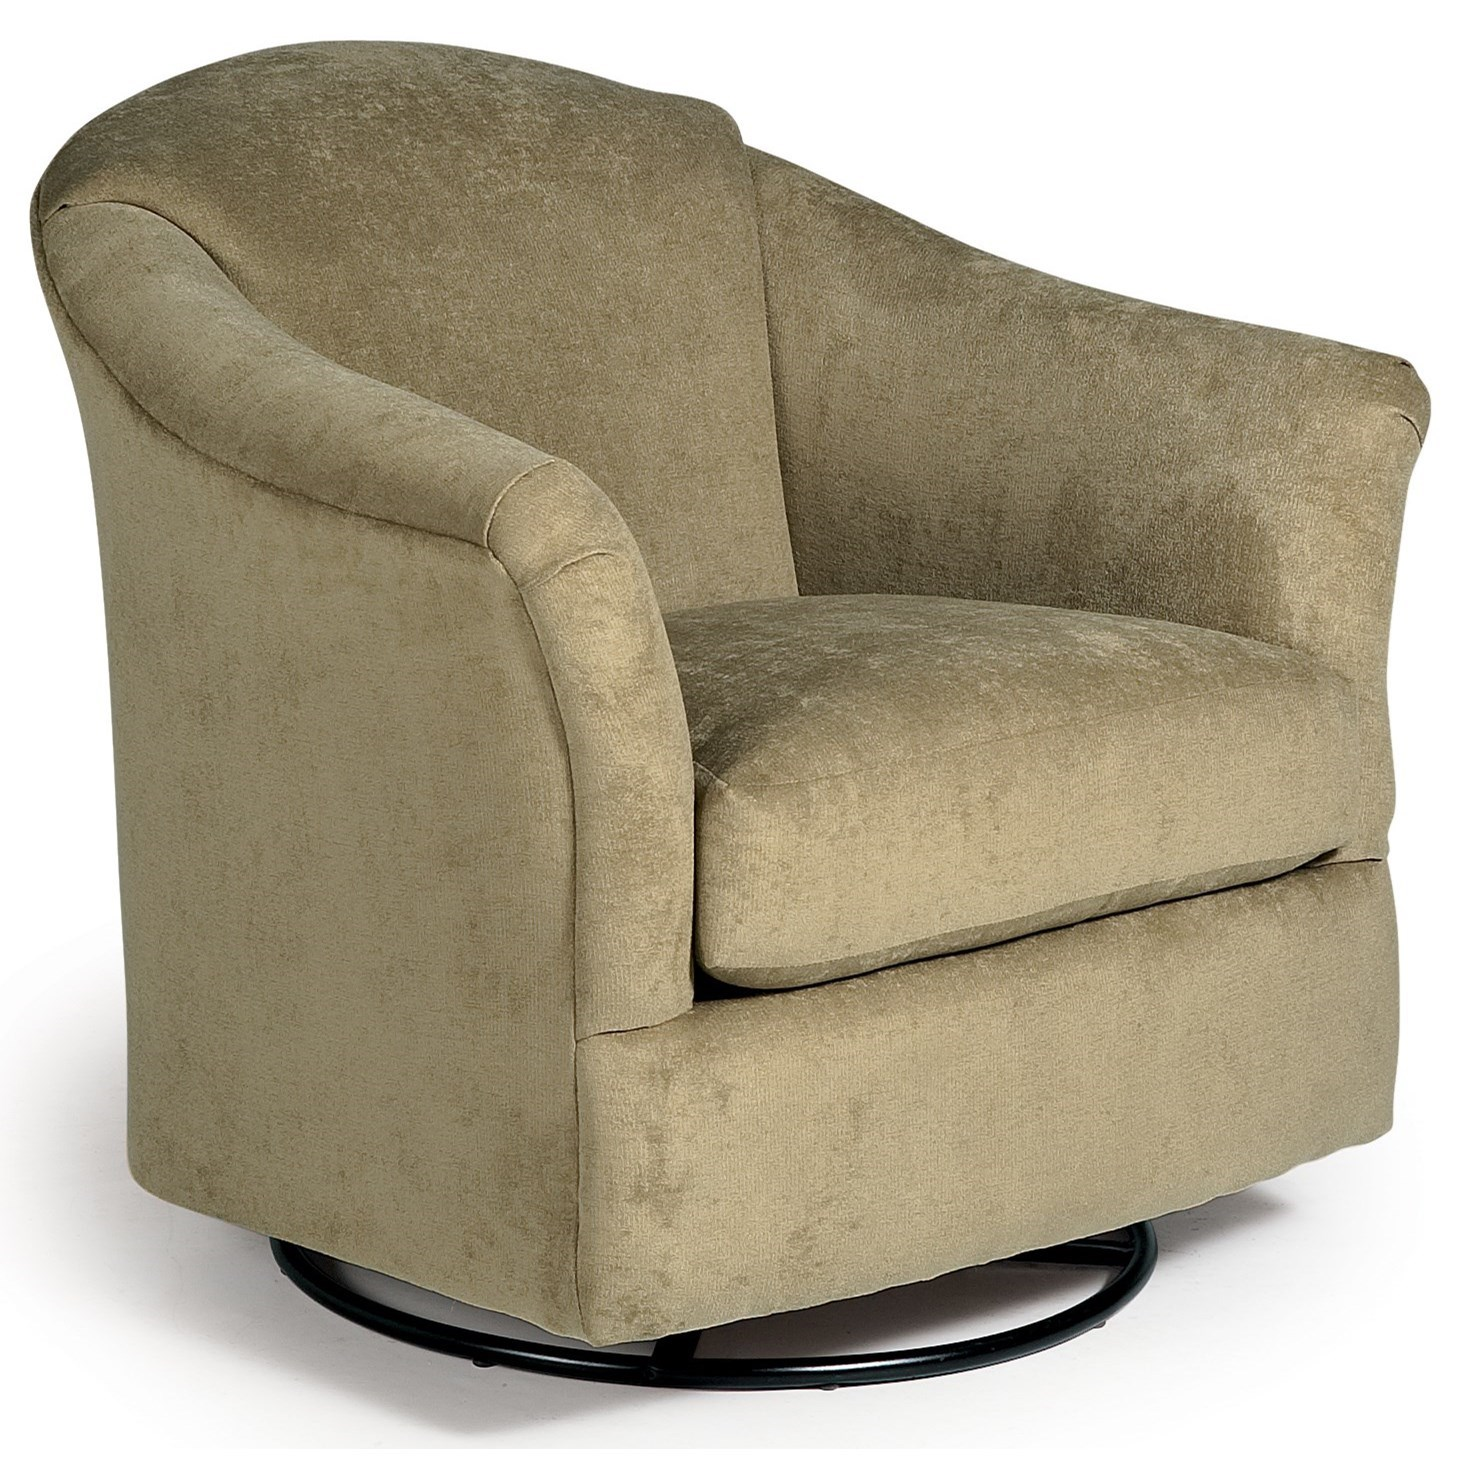 Swivel Glide Chairs Swivel Chair by Best Home Furnishings at Best Home Furnishings